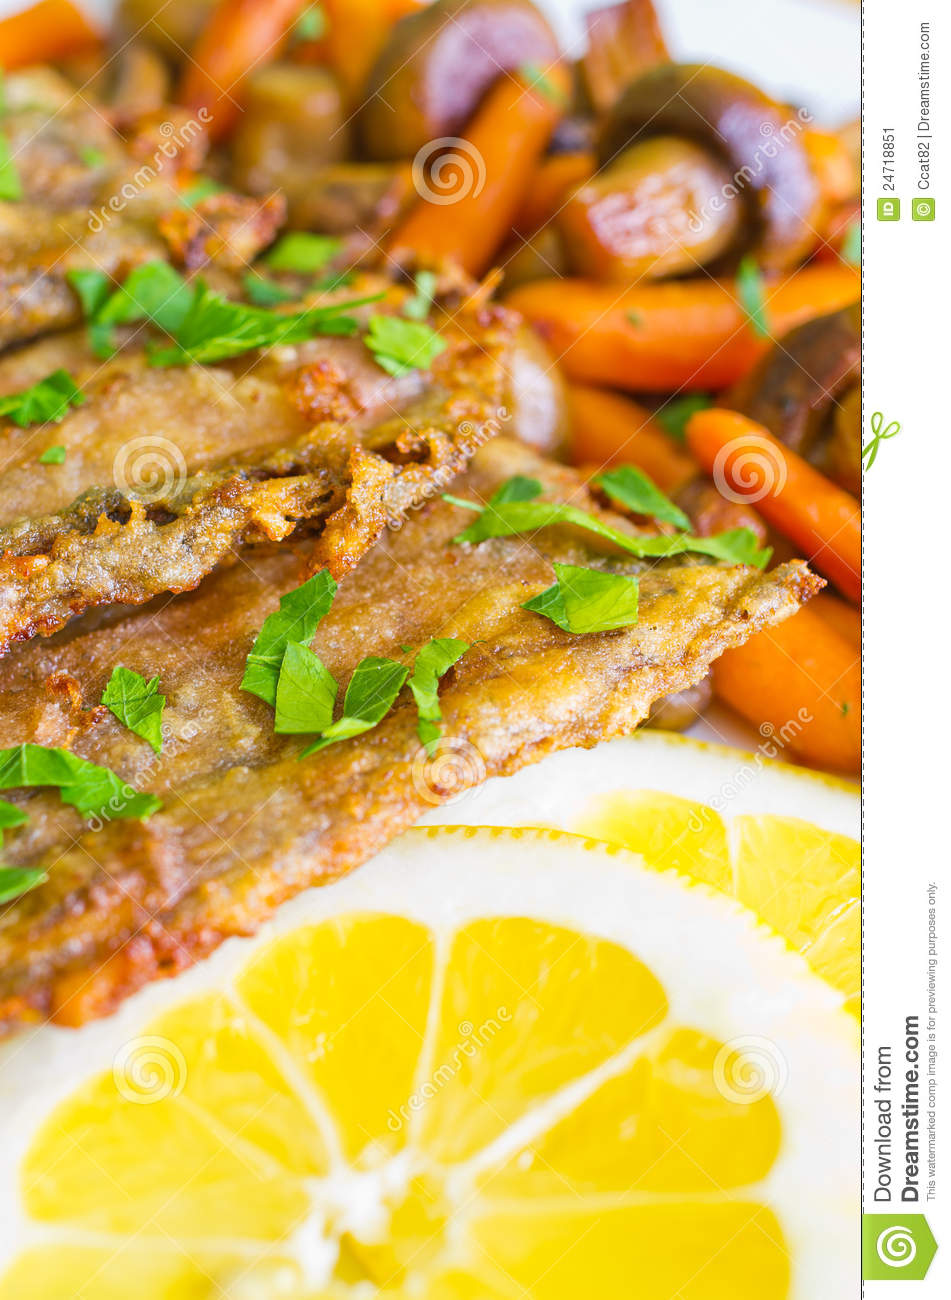 Fish fillets with vegetables stock image image 24718851 for What vegetables go with fish